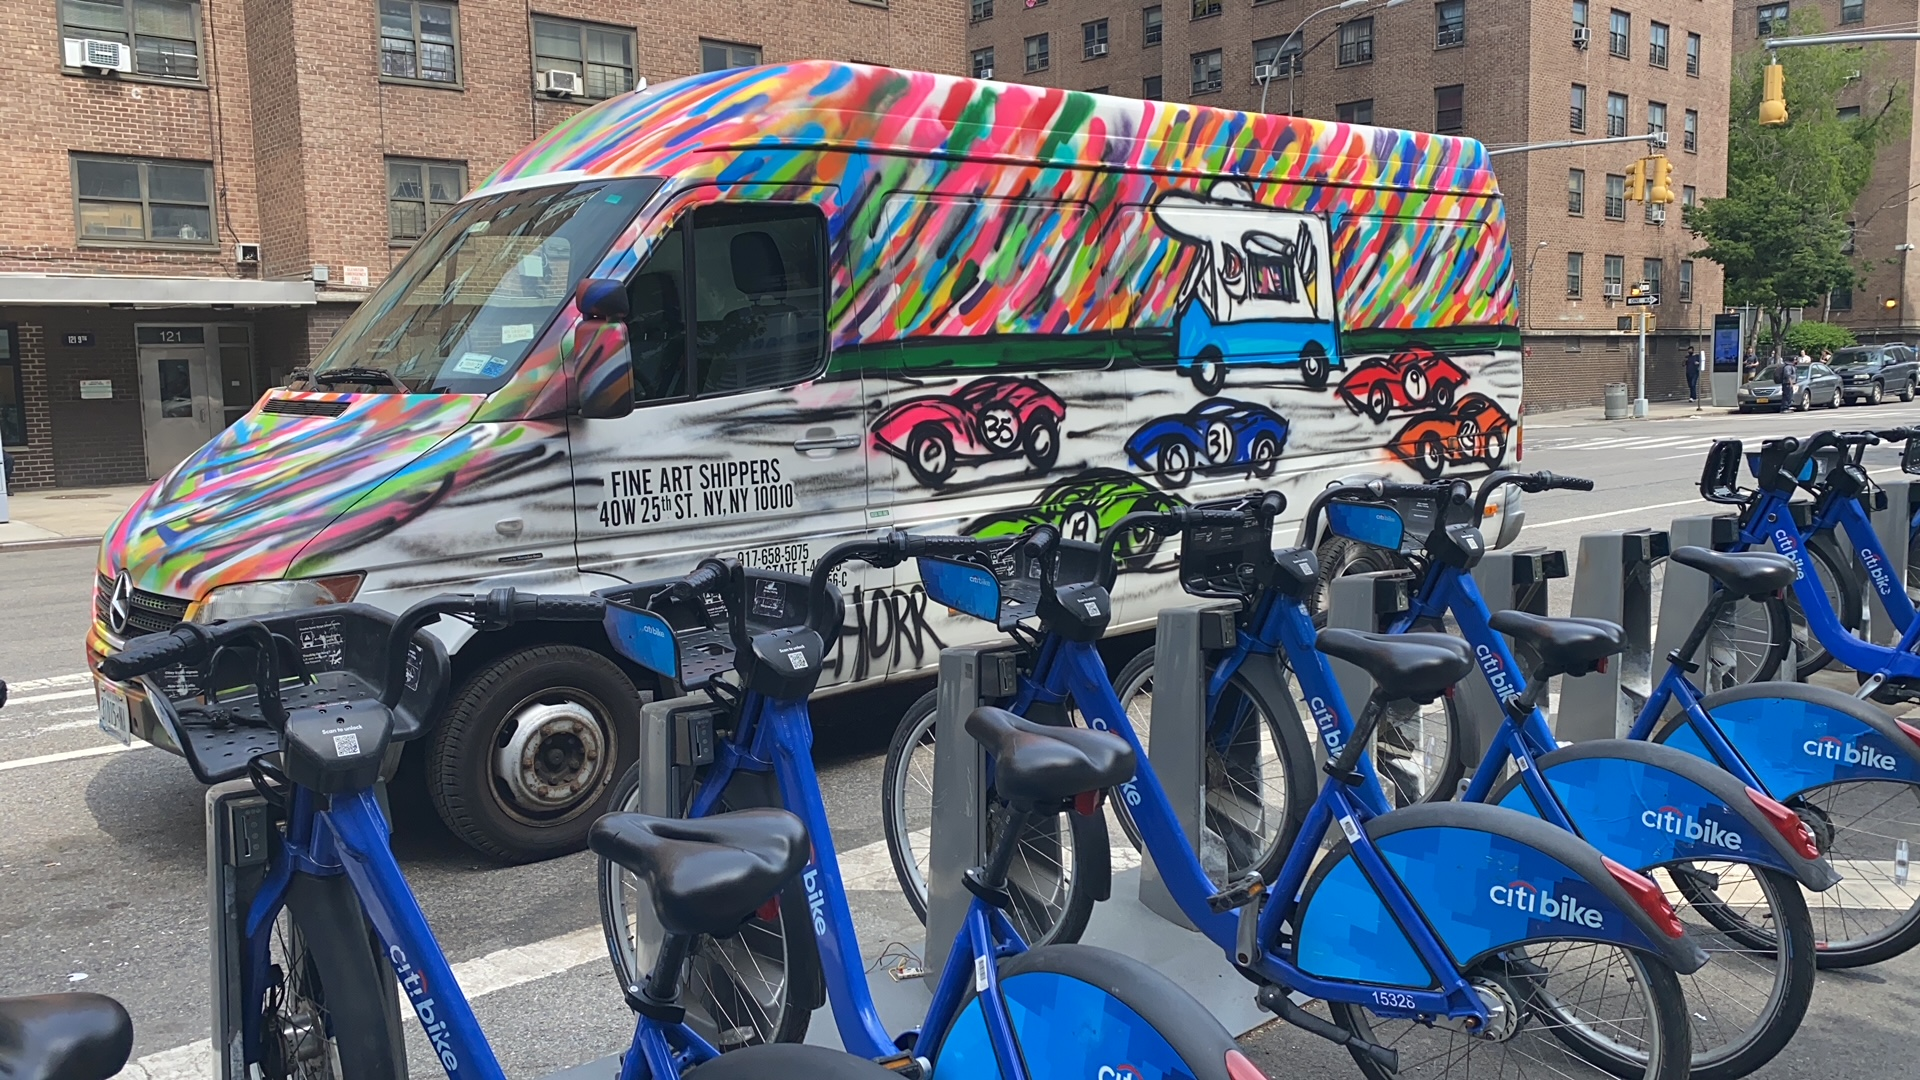 Da Race on Wheels: A Collaborative Art Project Uniting the Industry